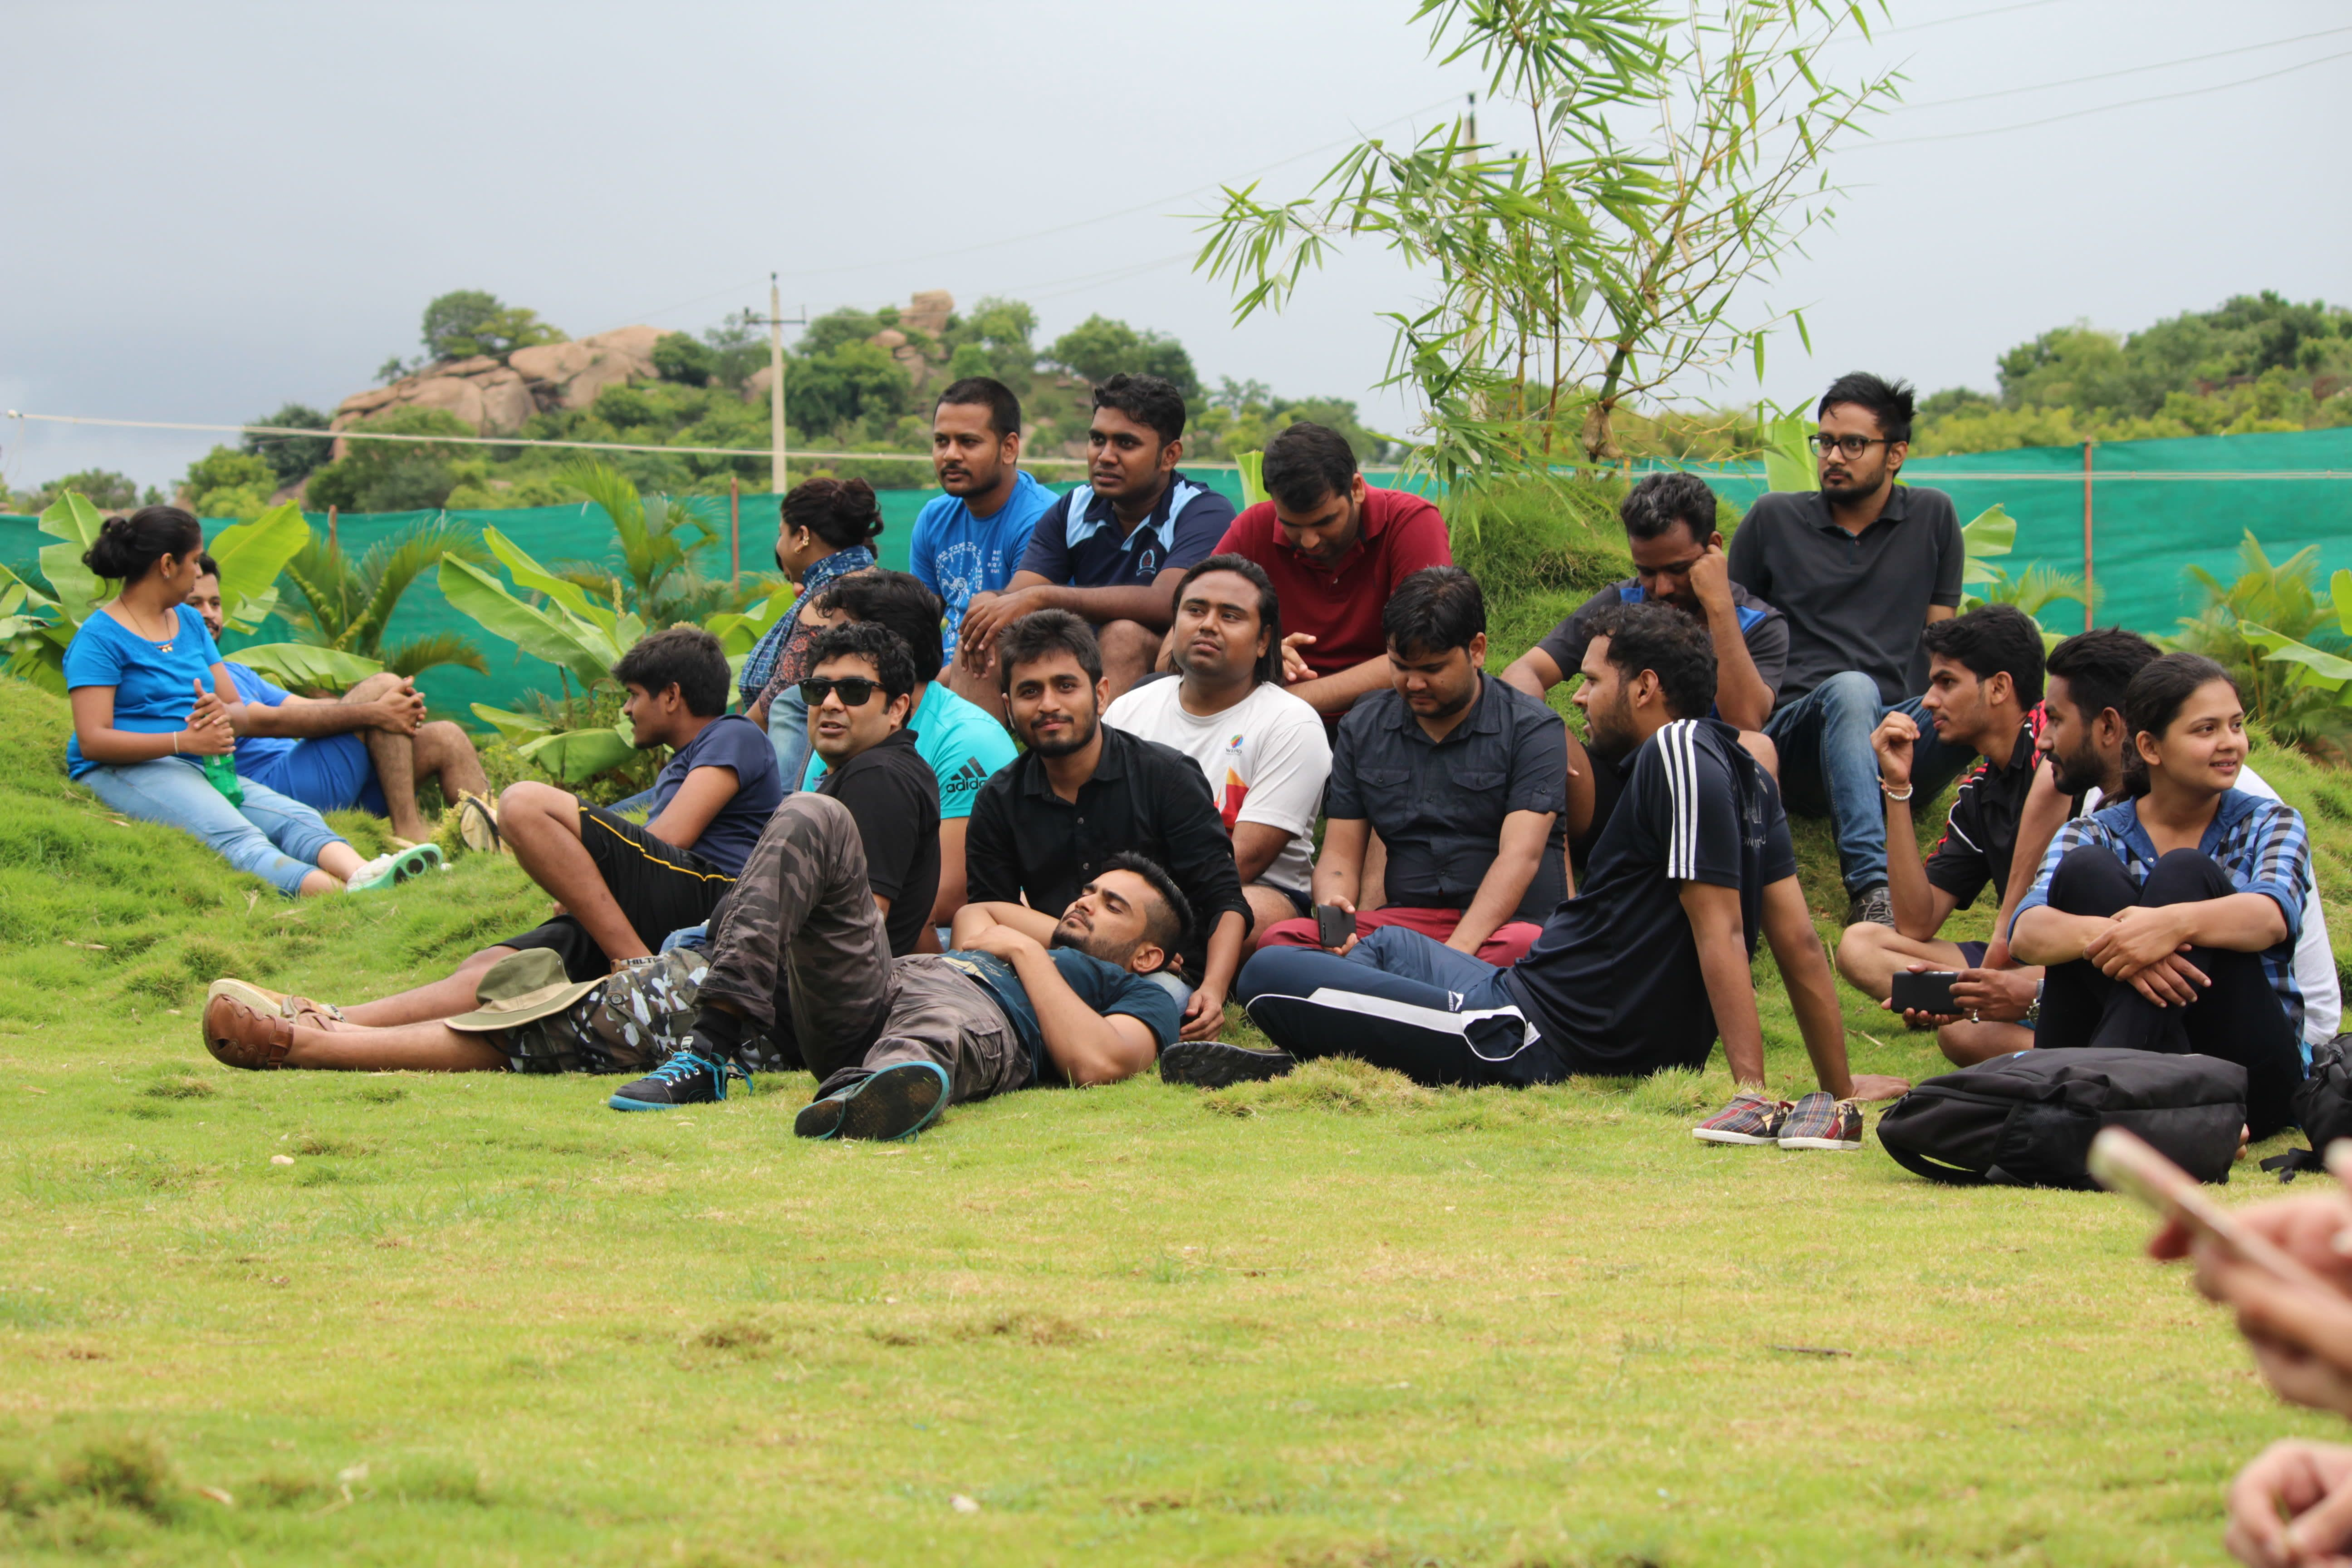 Our Xoxoians chilling out on the green lawns